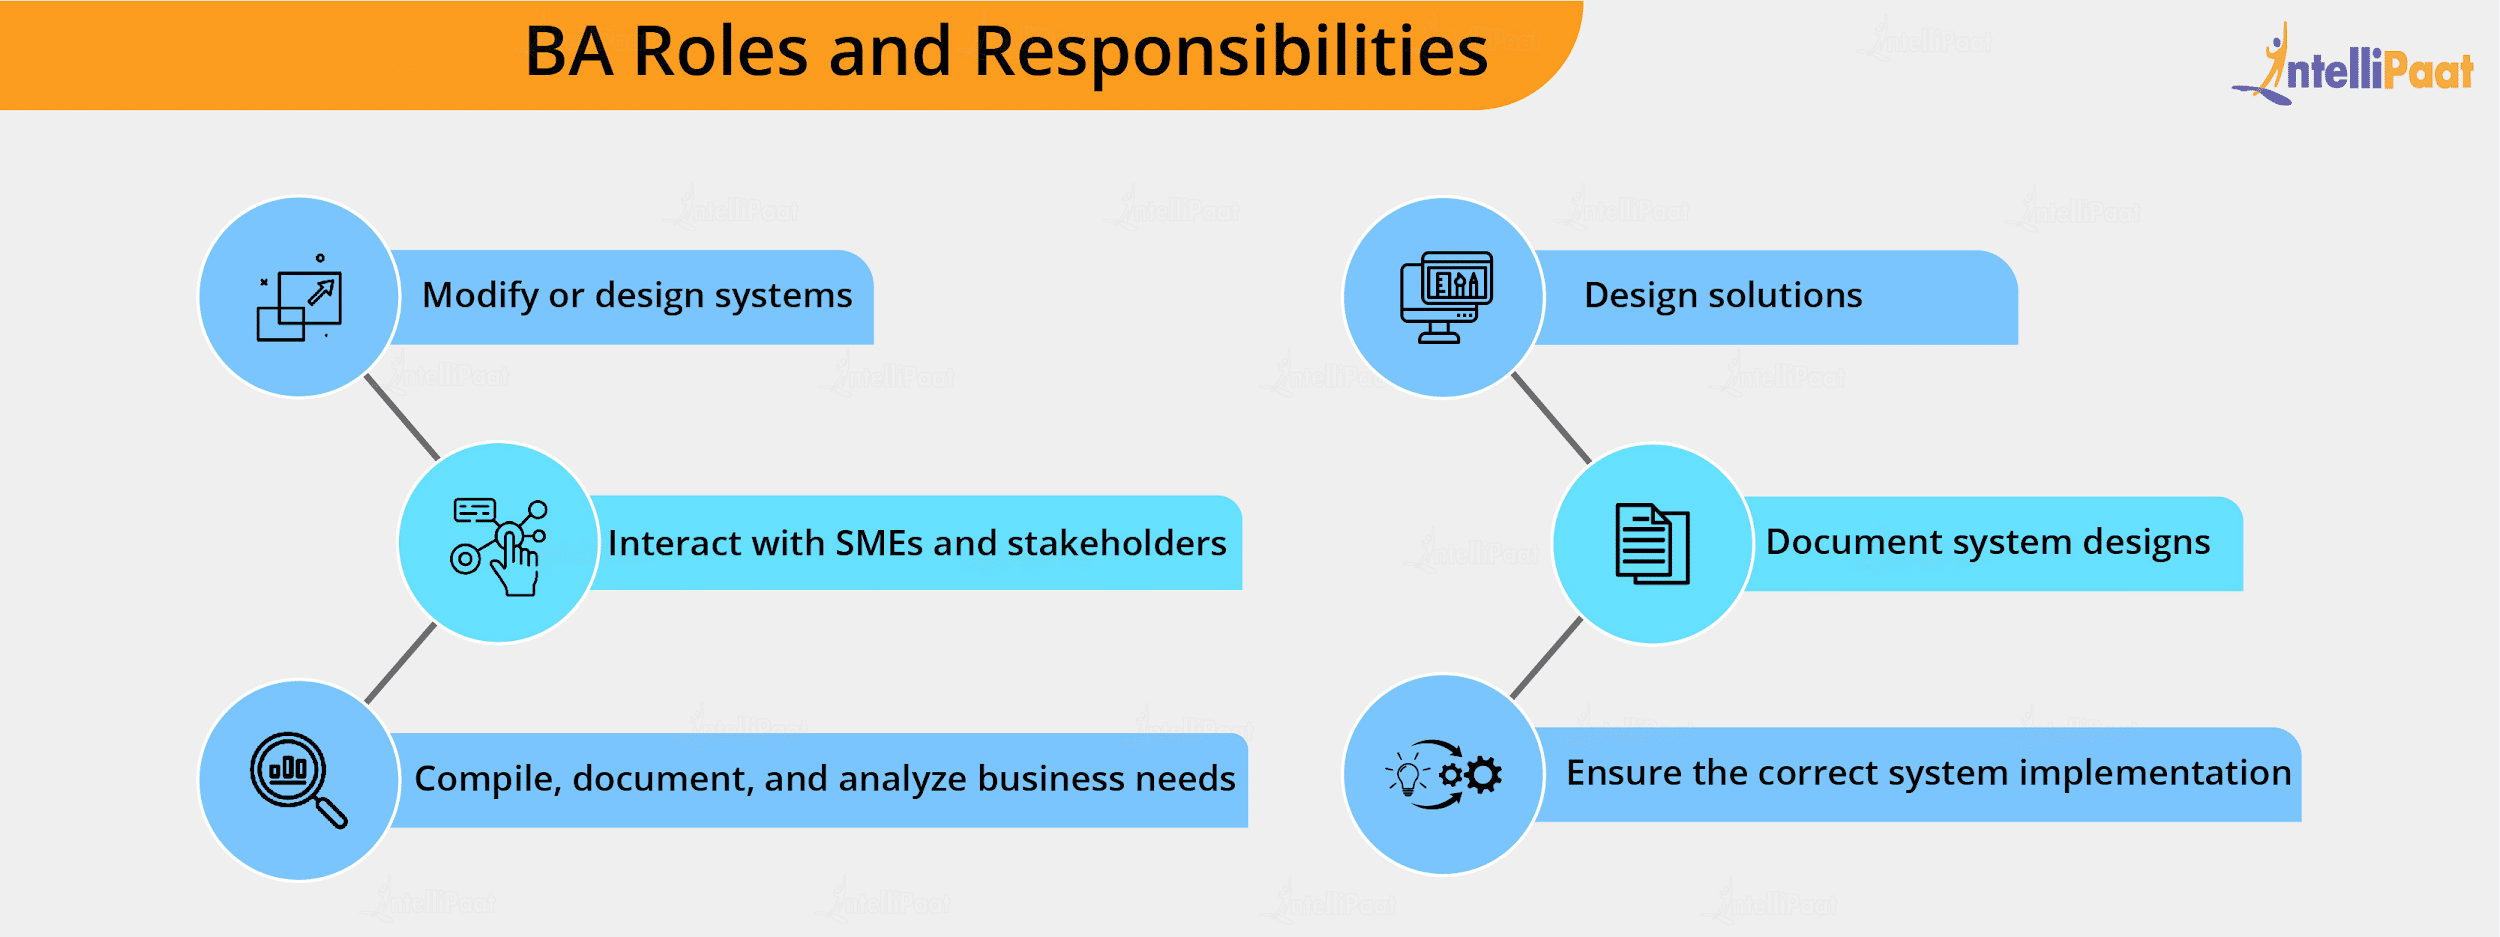 BA Roles and Responsibilities